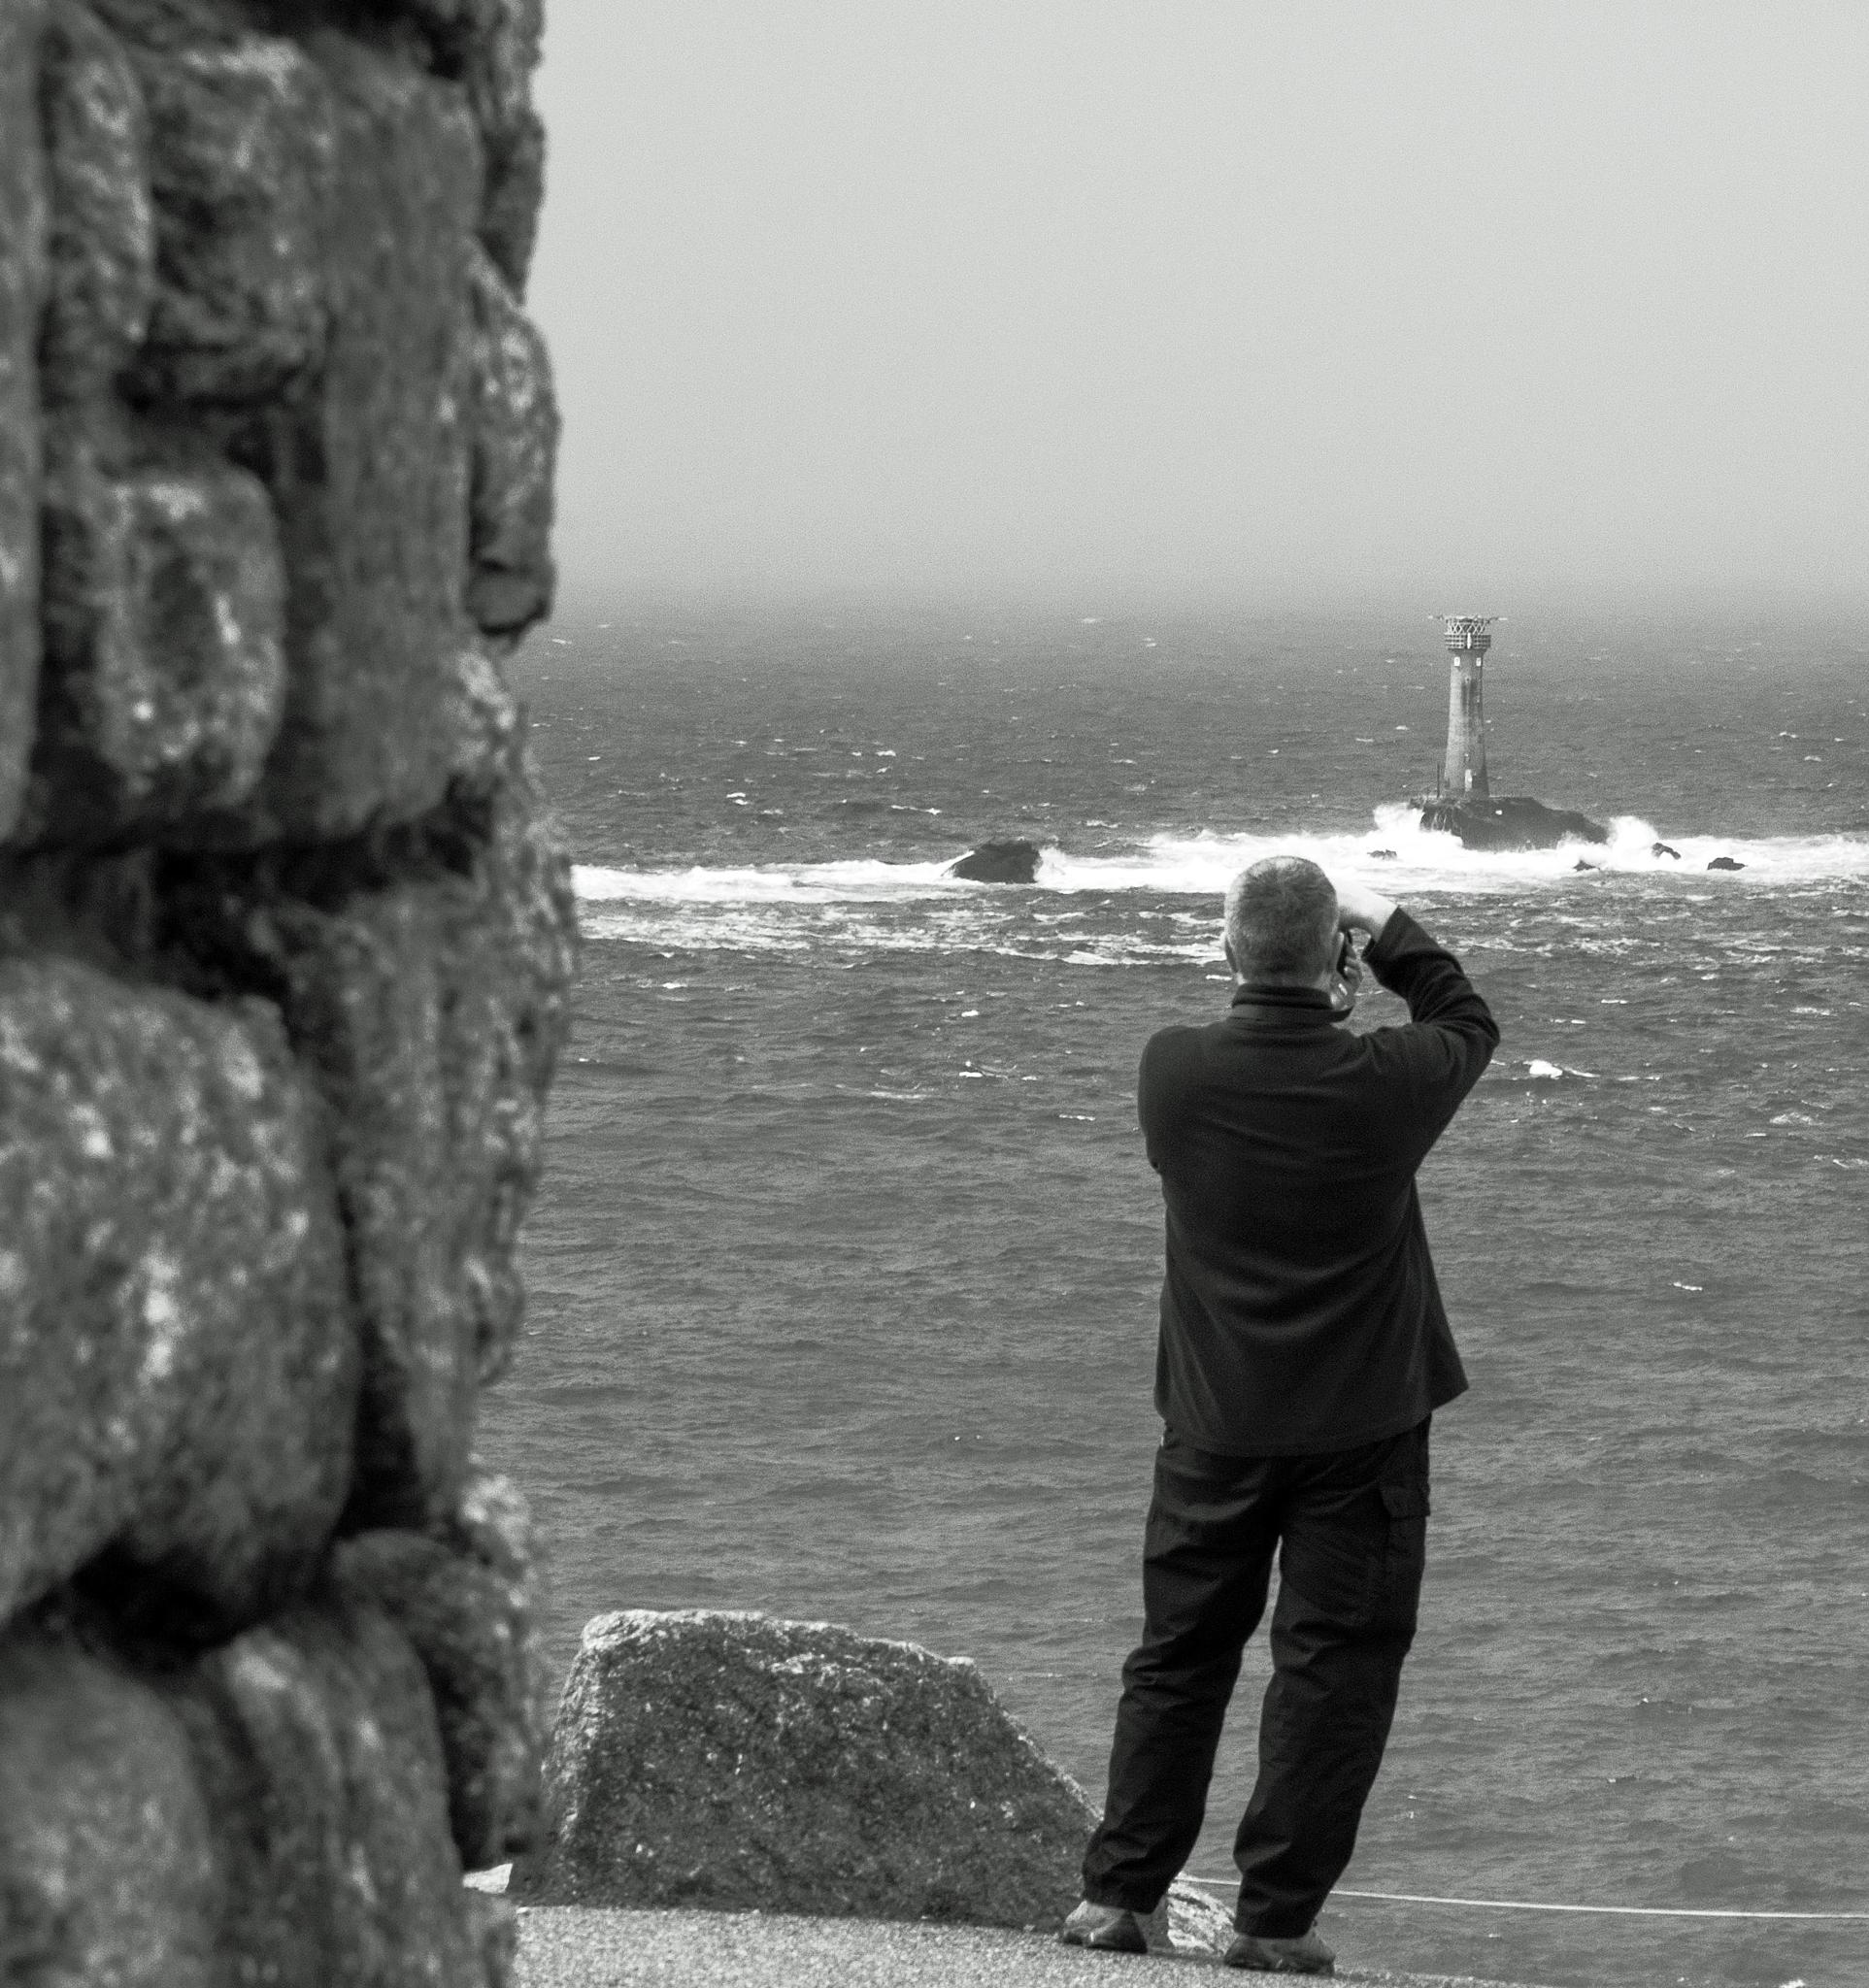 Taking photographs by MADOLDIE